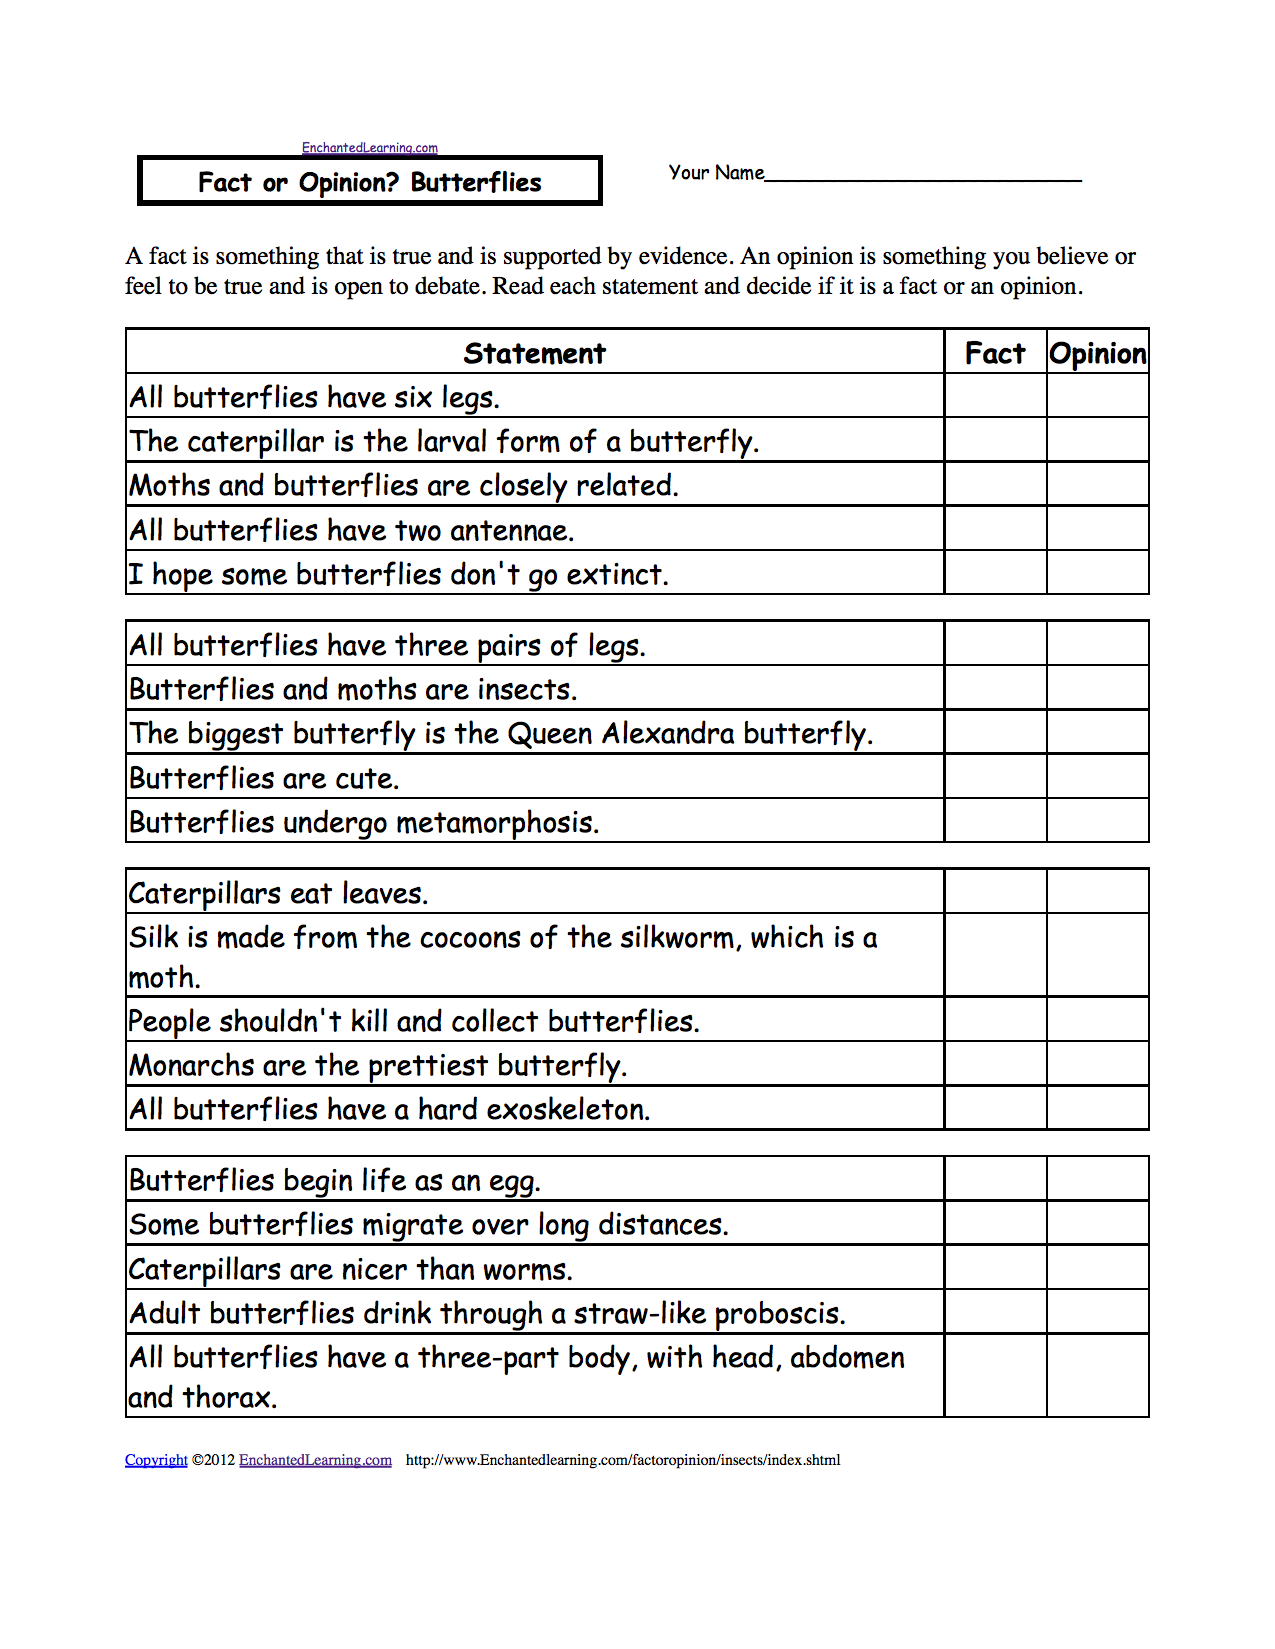 Worksheets Fact And Opinion Worksheets fact or opinion checkmark worksheets to print enchantedlearning com